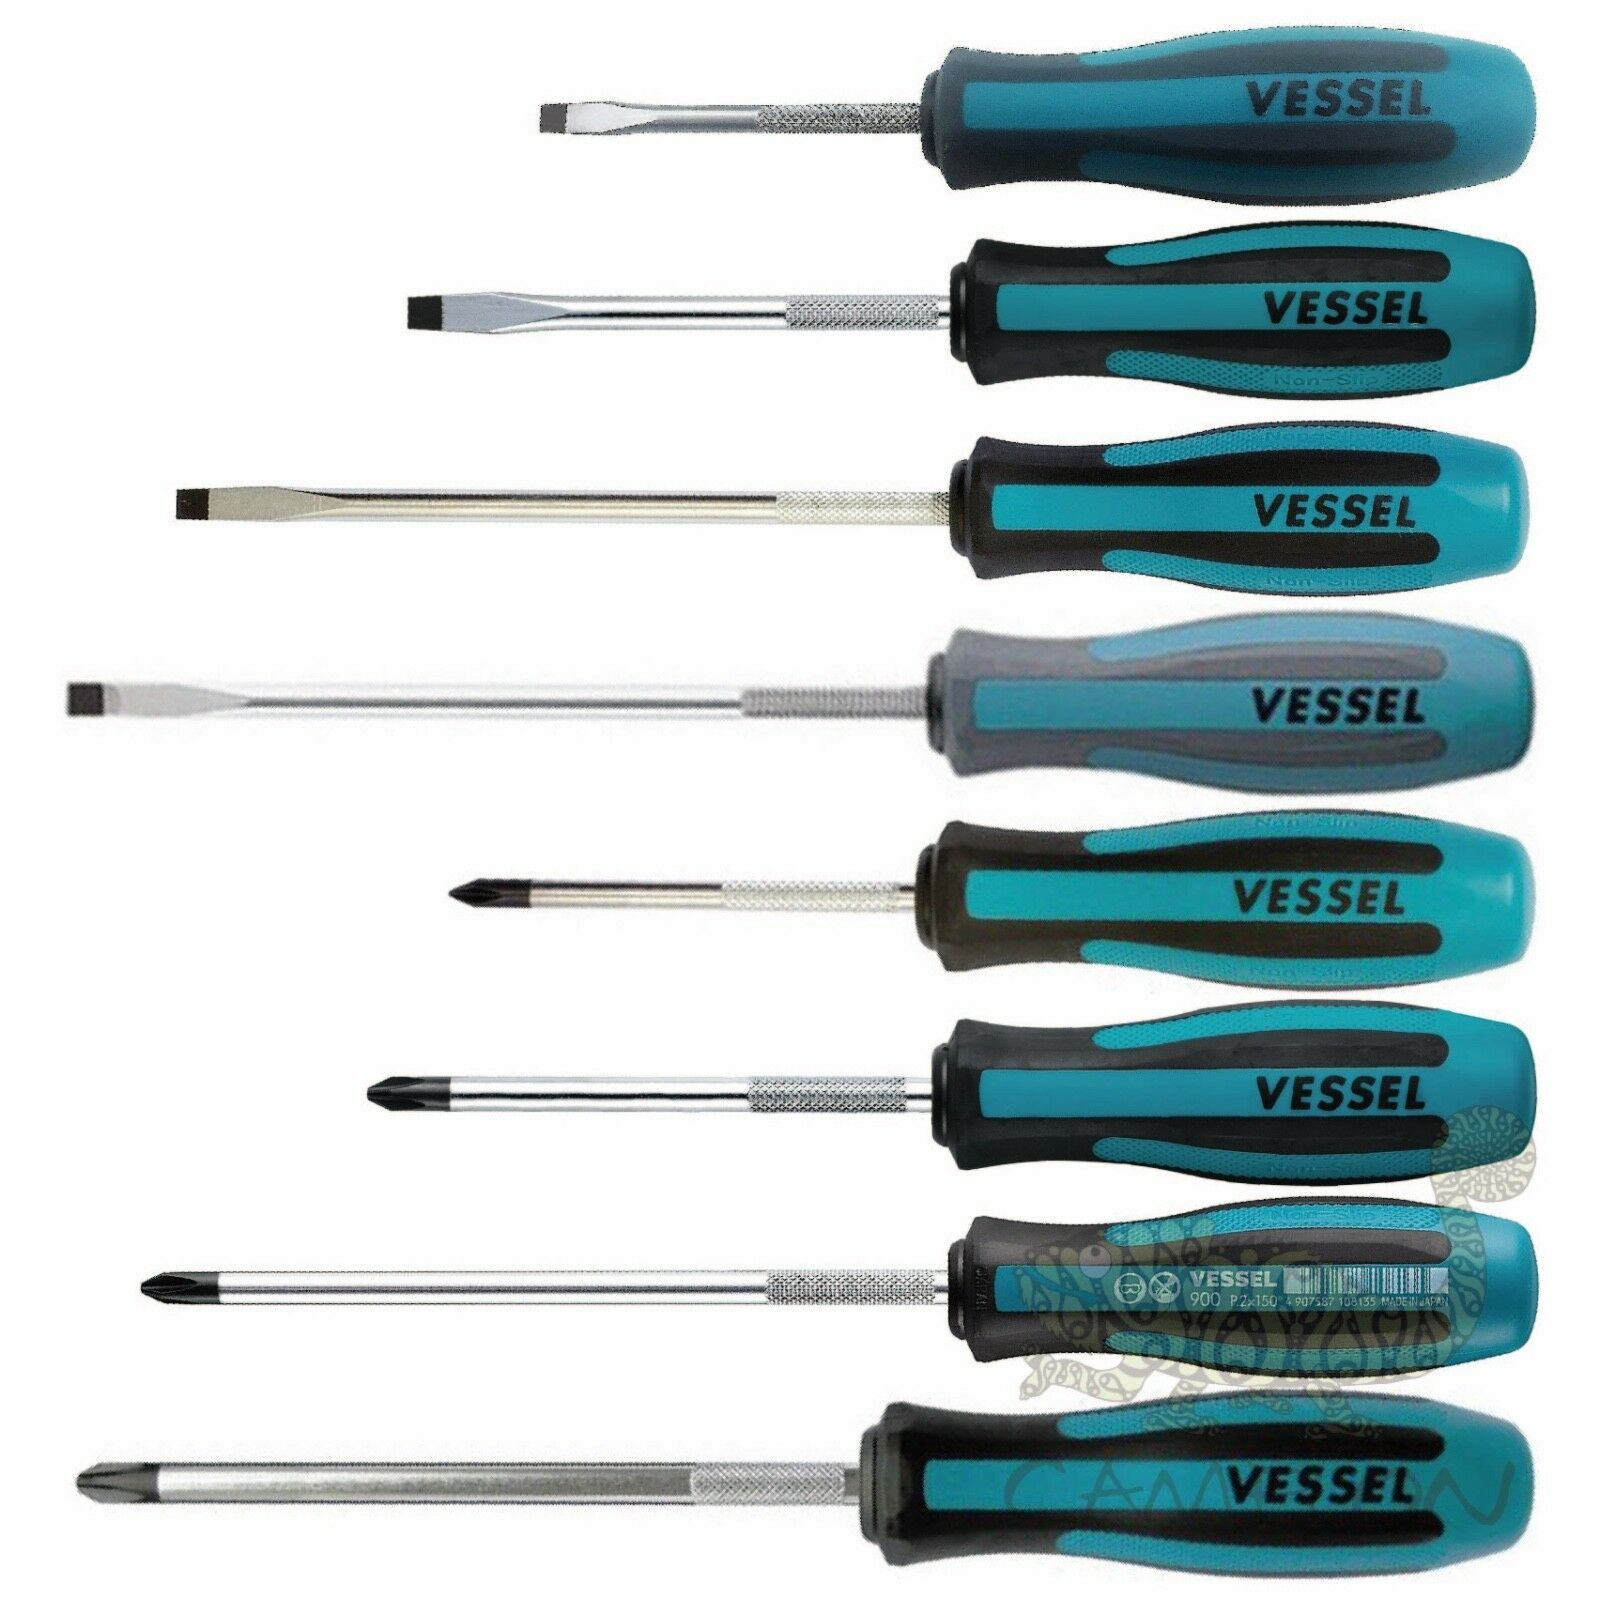 VESSEL Megadora Screwdriver -5.5,6,8,+1,2,3 75mm-150mm No.900 made in Japan